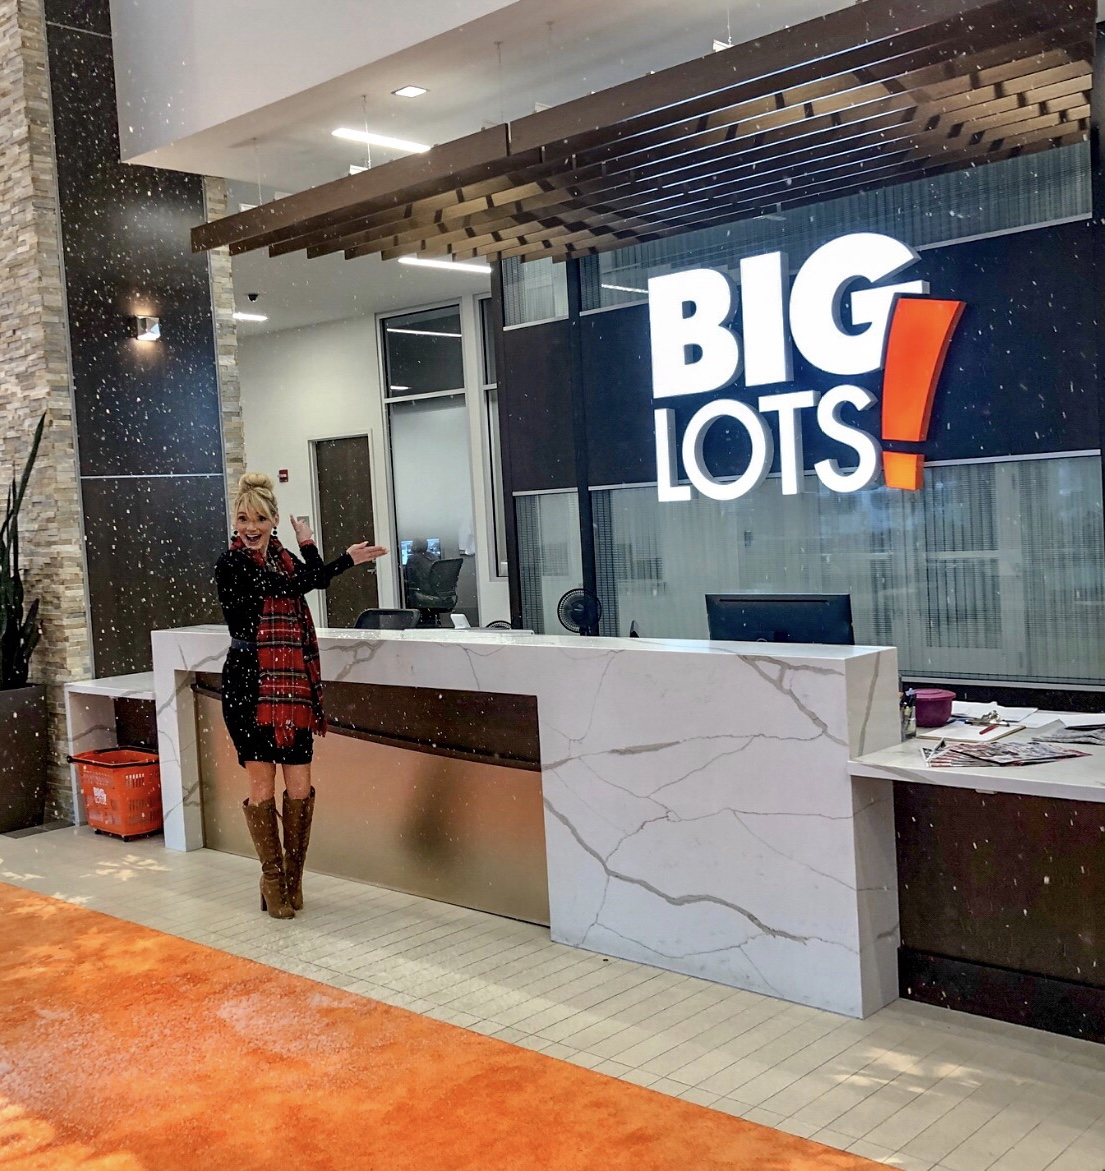 big lots holiday 2019 - Your Destination for Holiday Shopping Needs